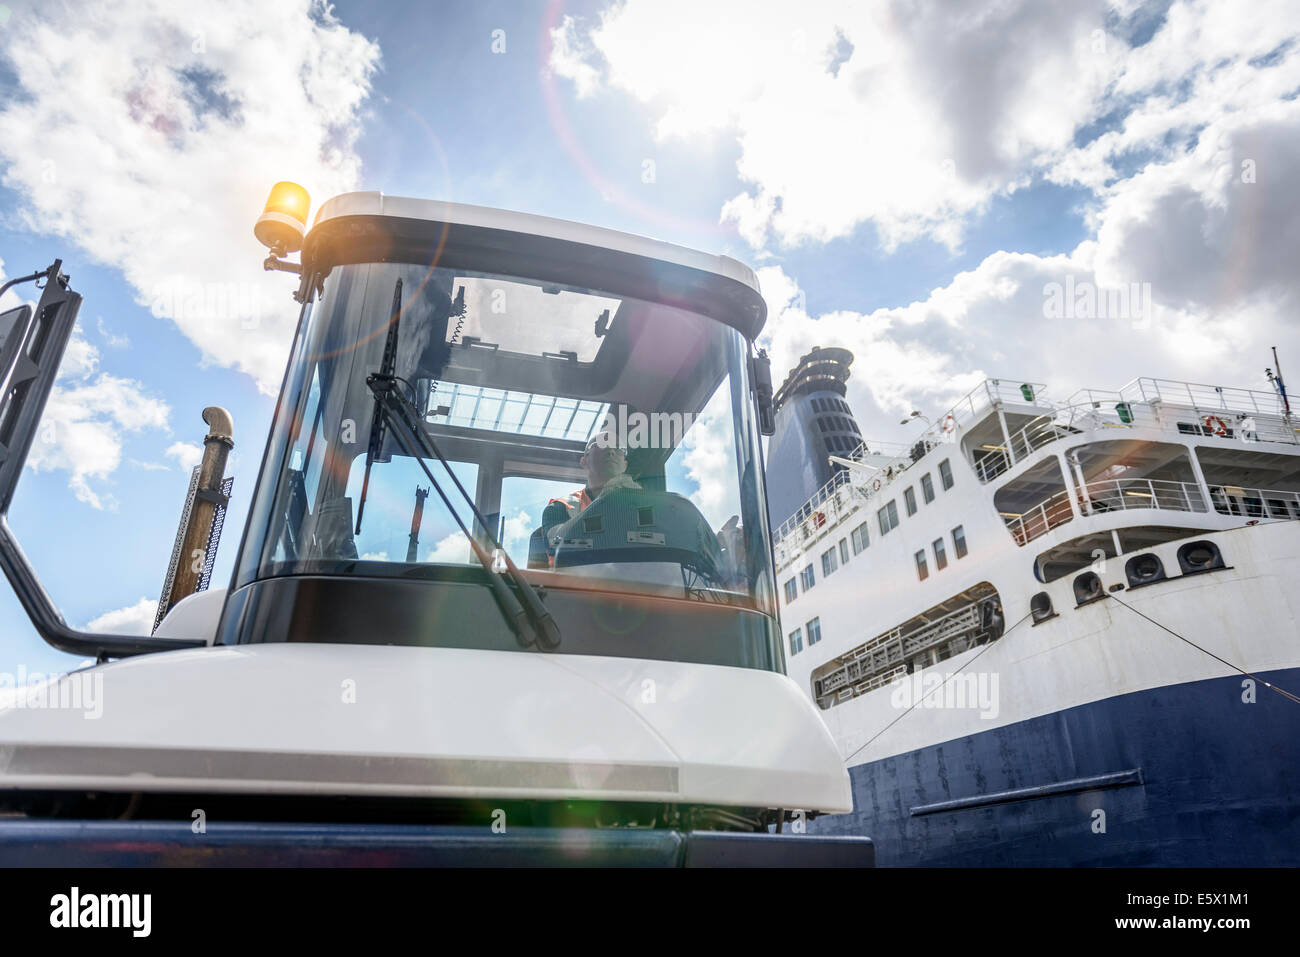 Shipping container truck and driver with ship in port, low angle view - Stock Image